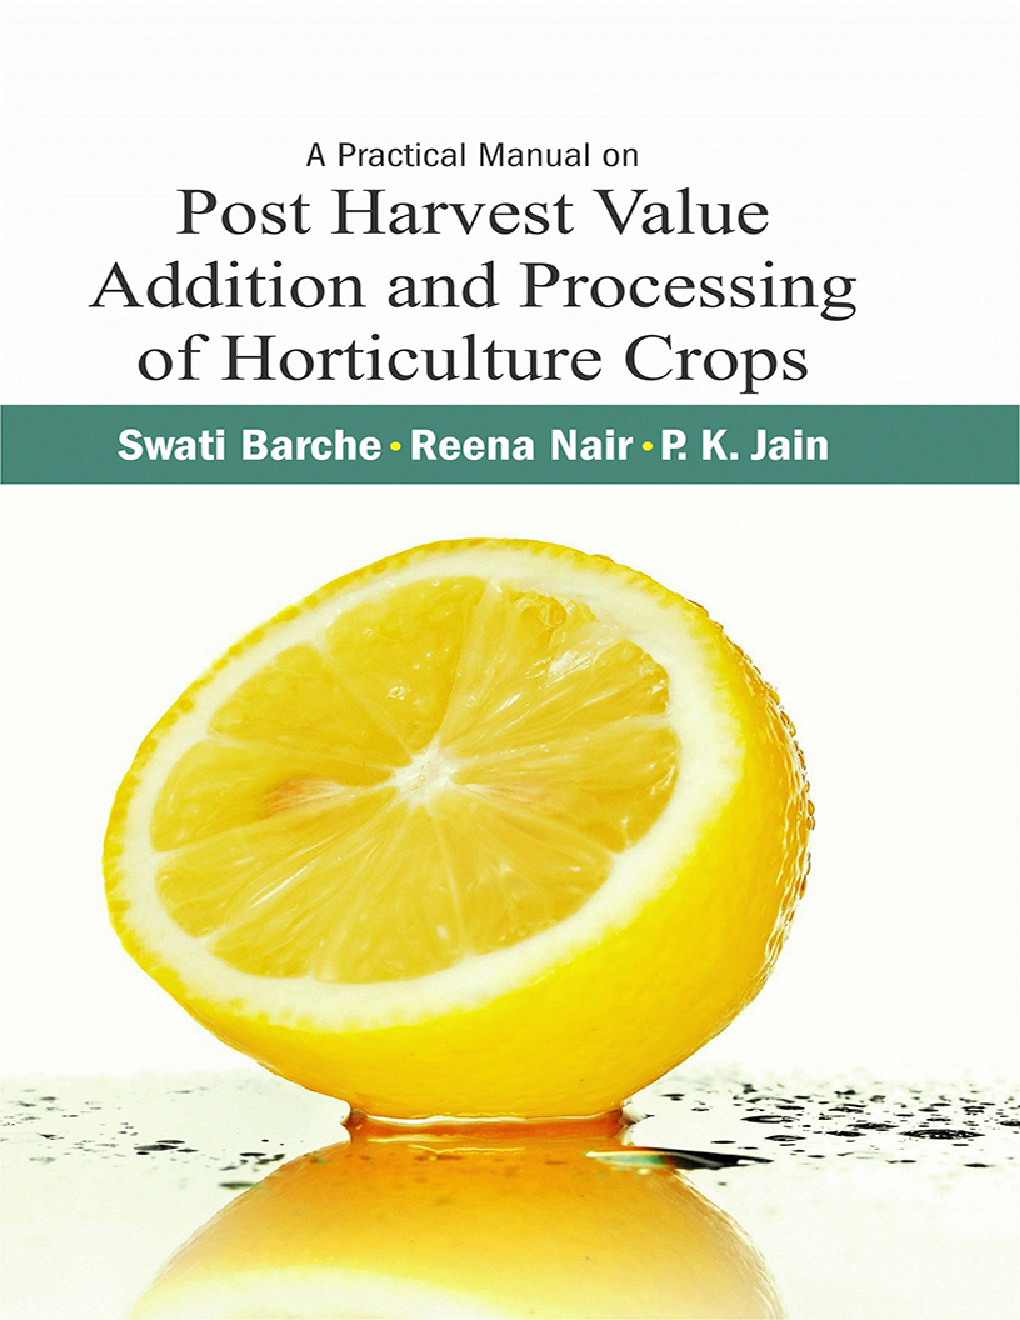 Harvesting and Postharvest Technology of Horticultural Crops